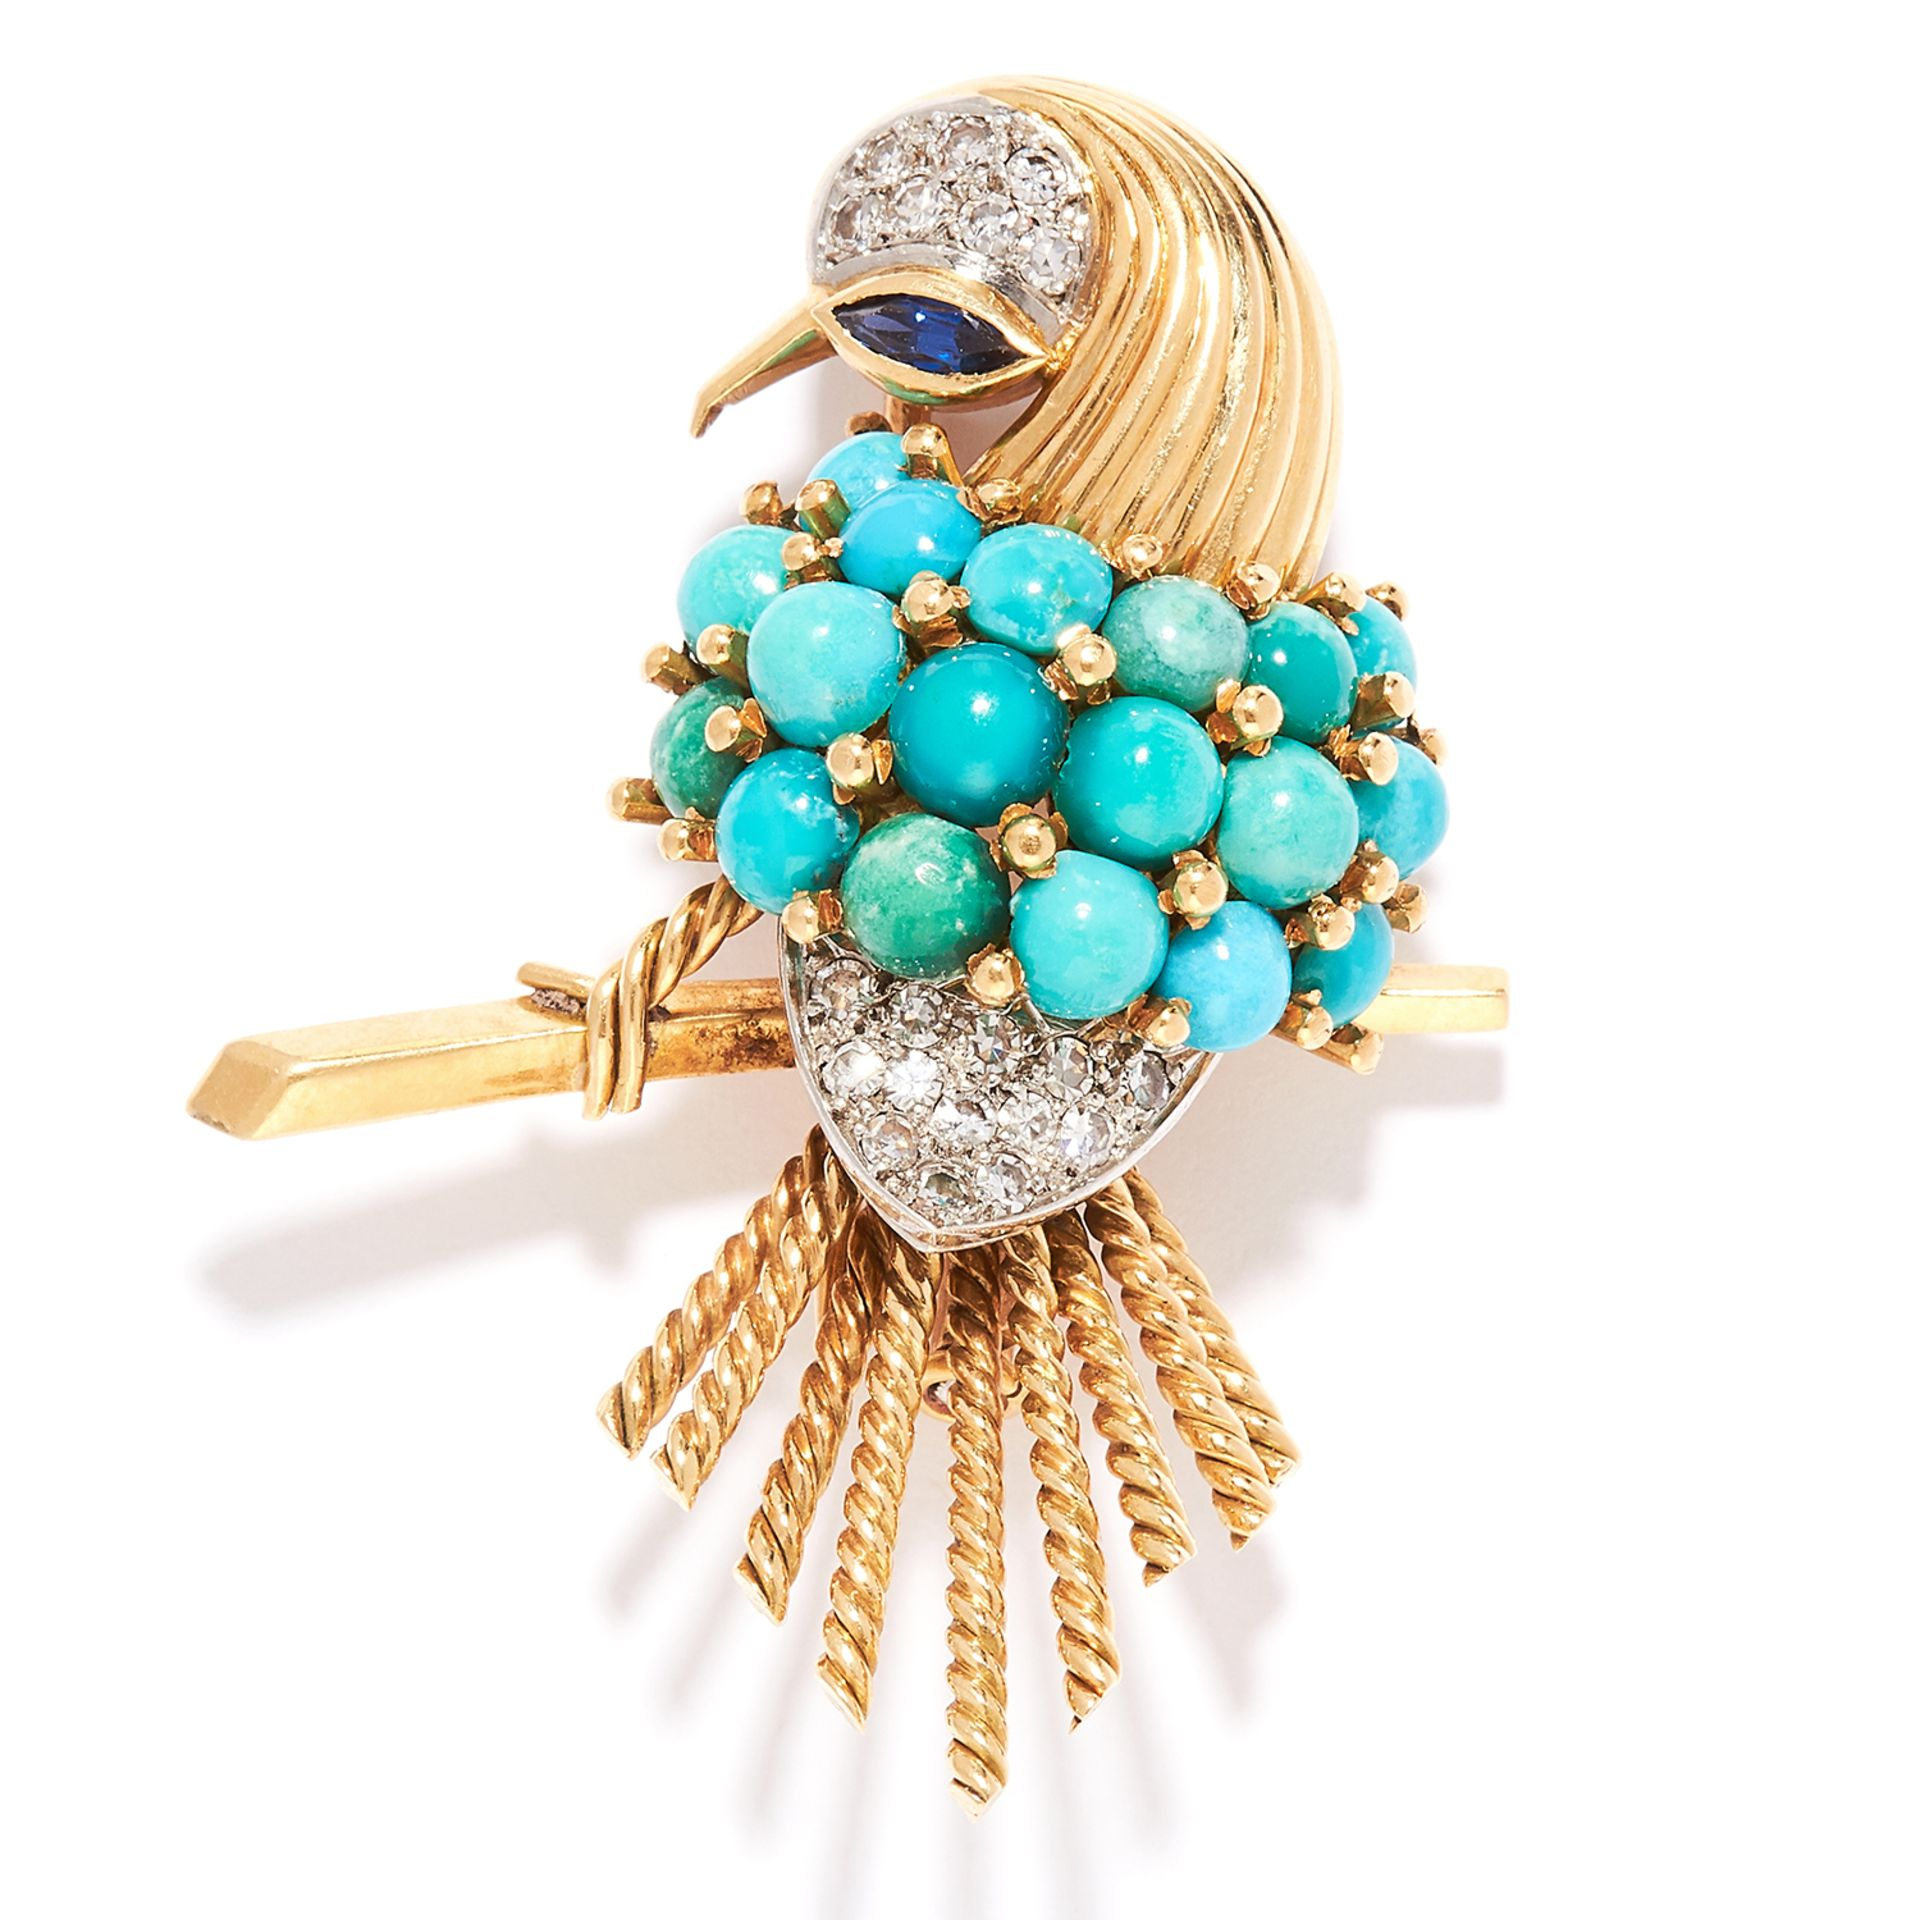 VINTAGE TURQUOISE, SAPPHIRE AND DIAMOND BIRD BROOCH, BOUCHERON in 18ct yellow gold, set with